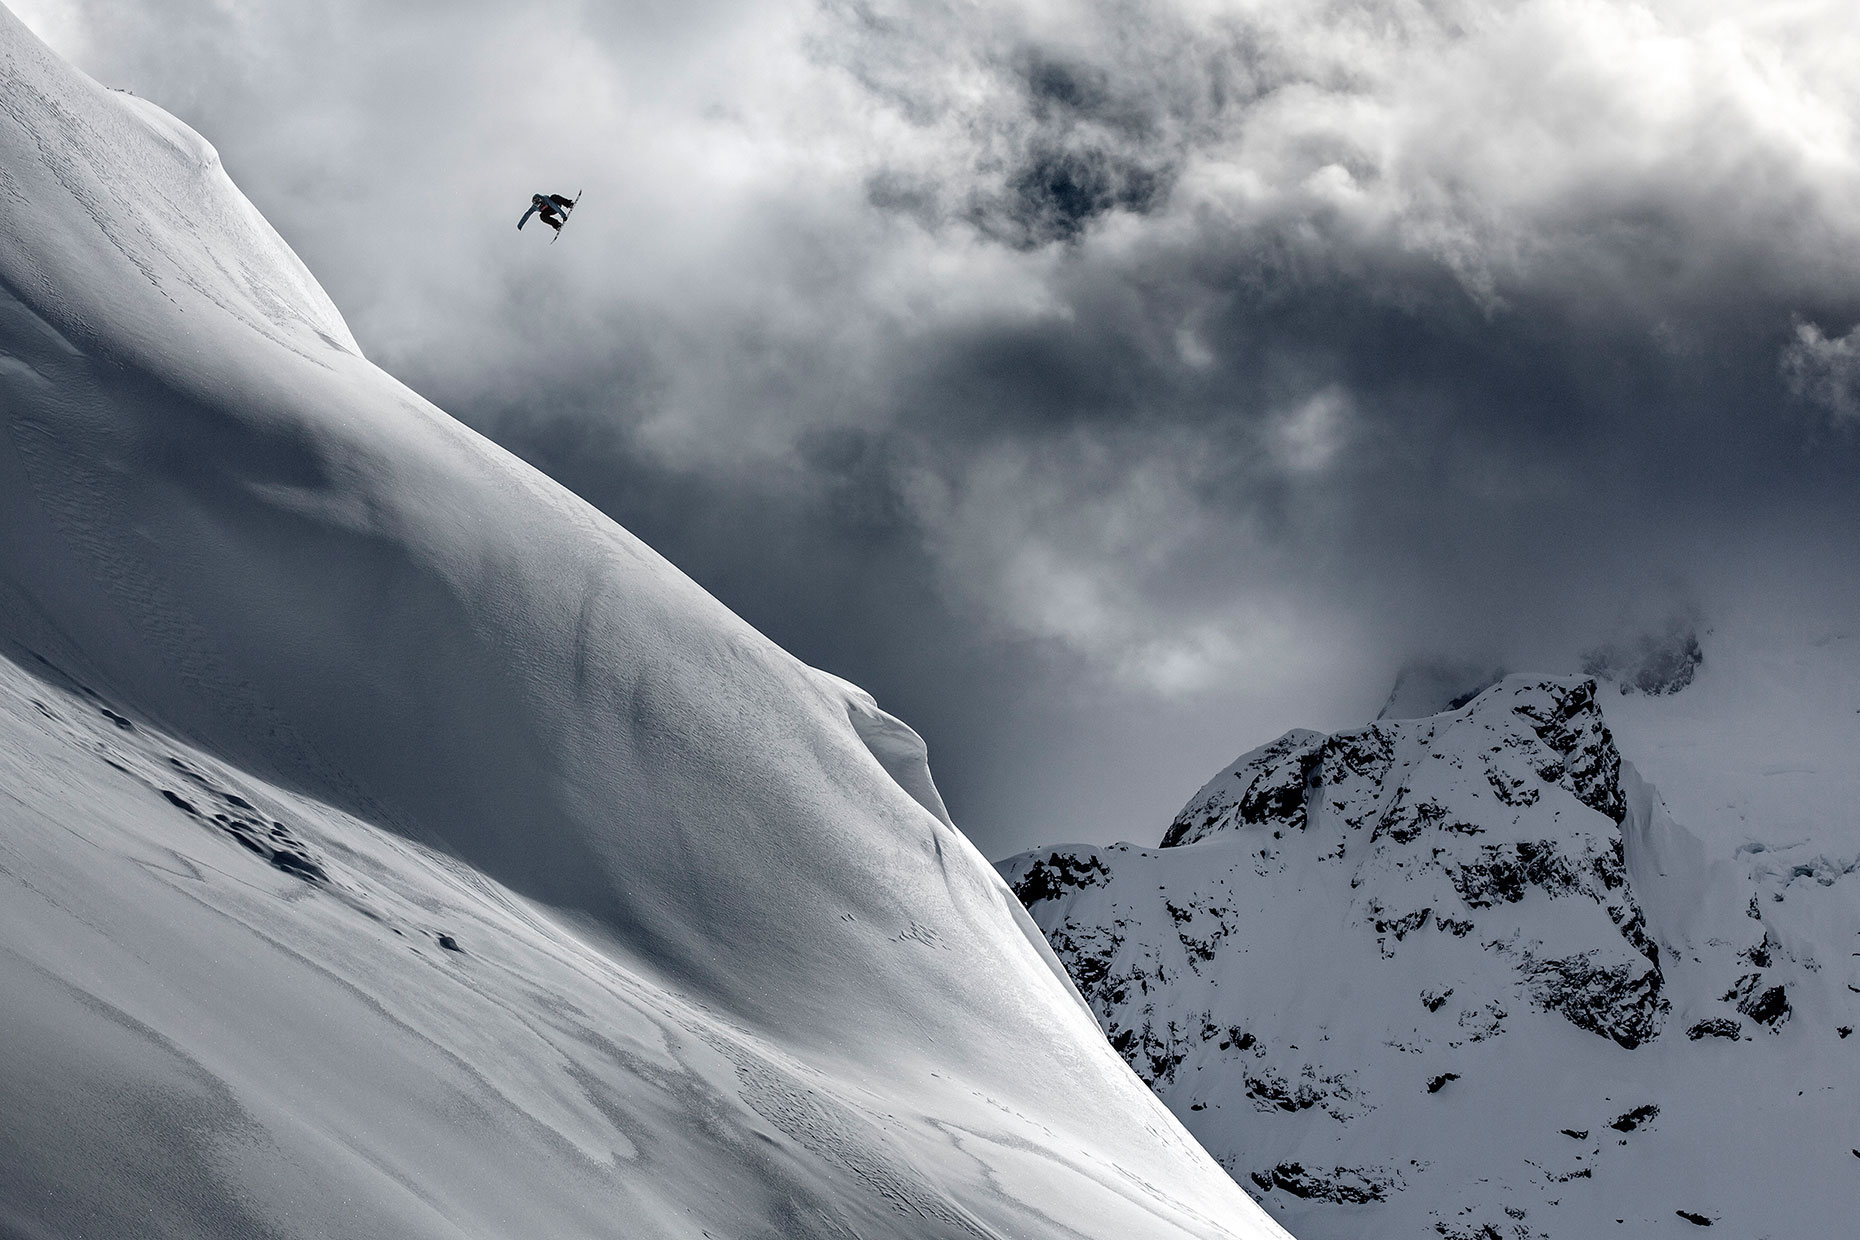 25_rusty_ockenden_whistler_backcountry_jussi_grznar-8835-2